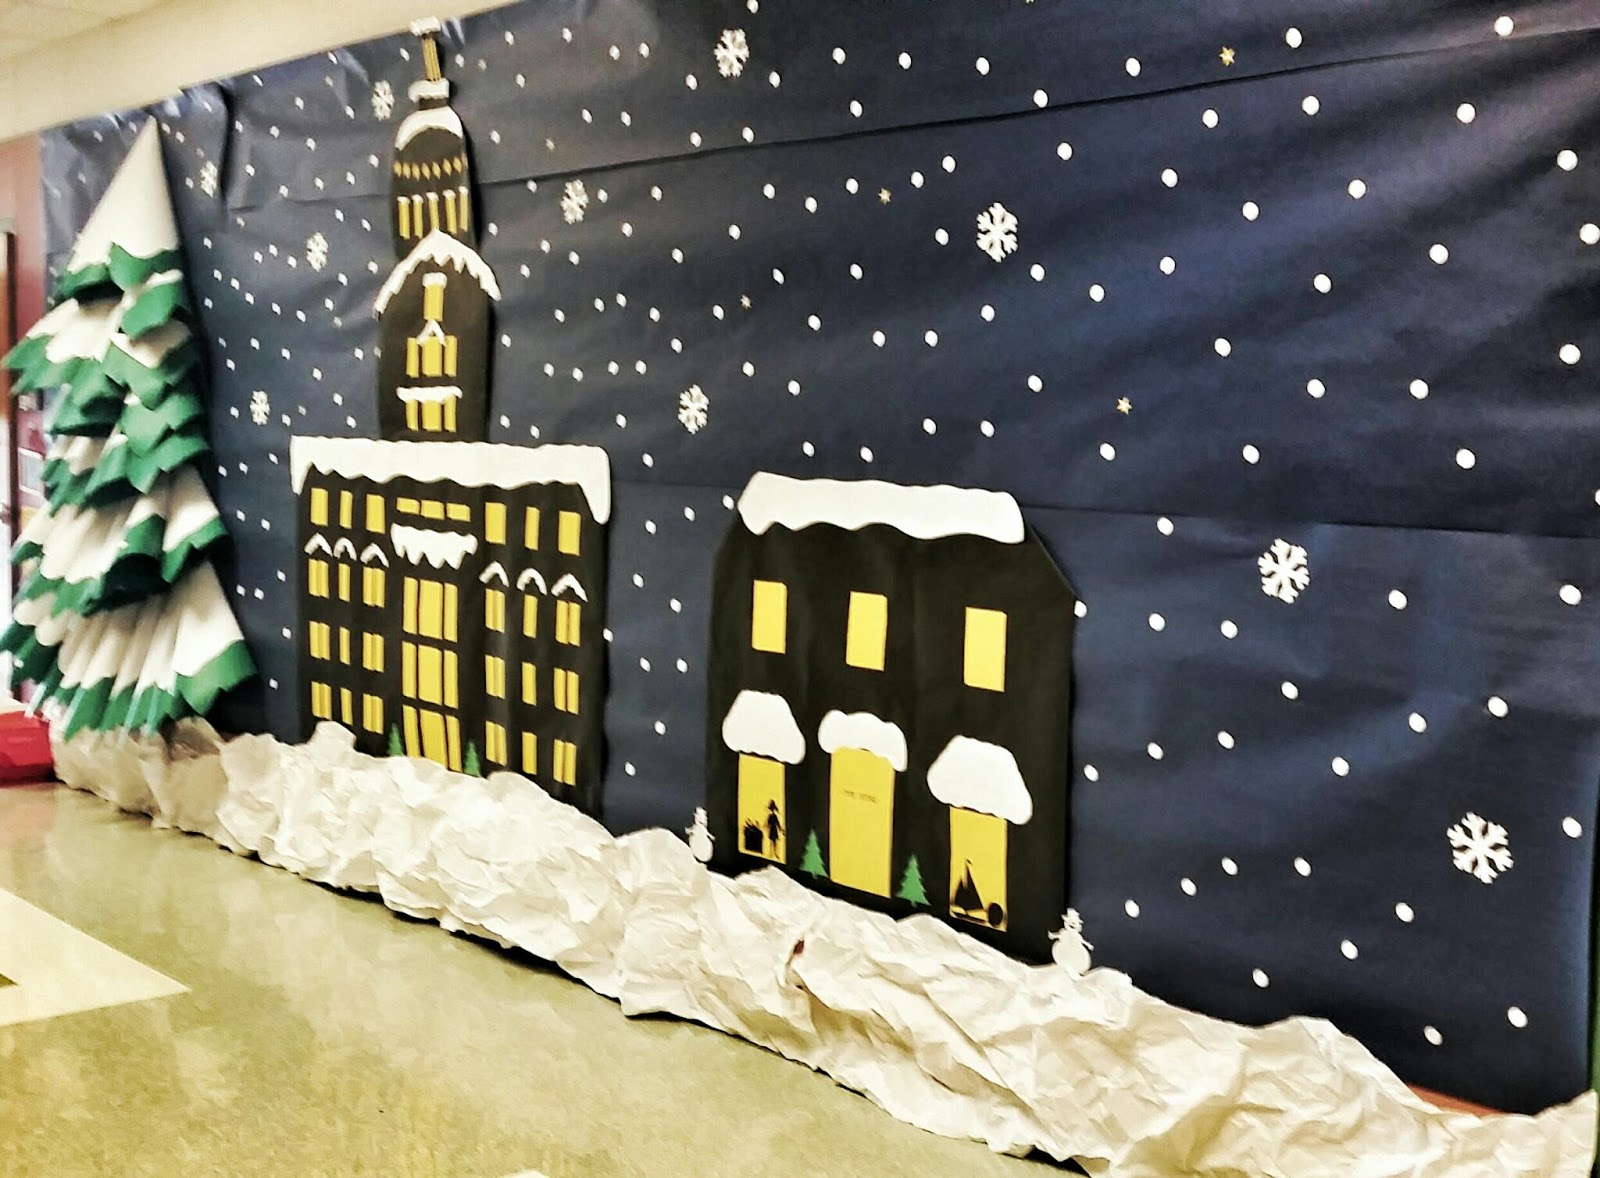 Christmas Decorations School Hall : Learning as i sew bake cut and create polar express